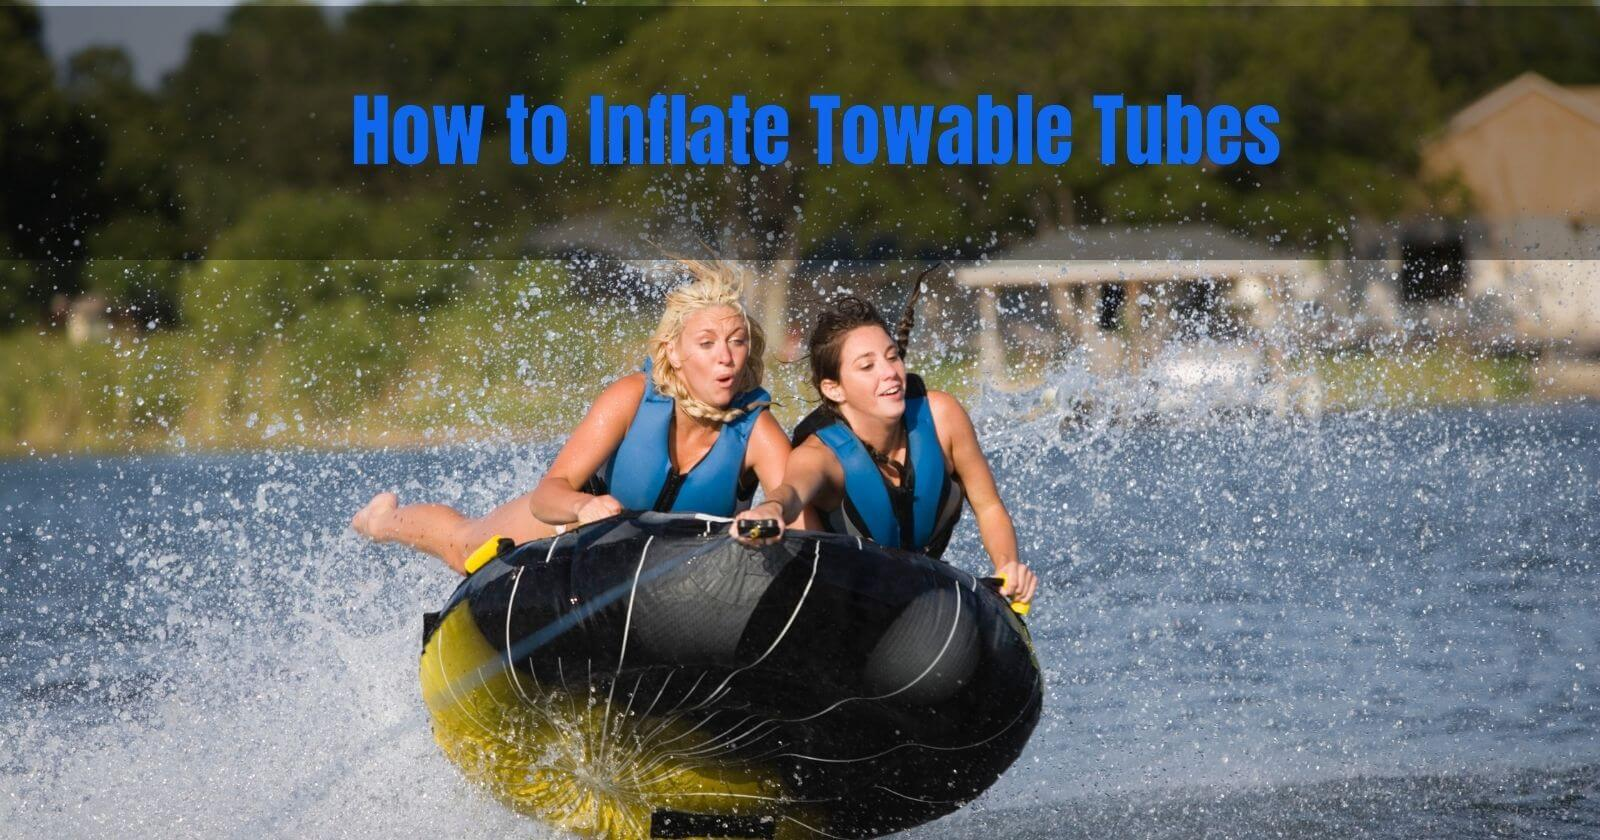 How to inflate towable tubes